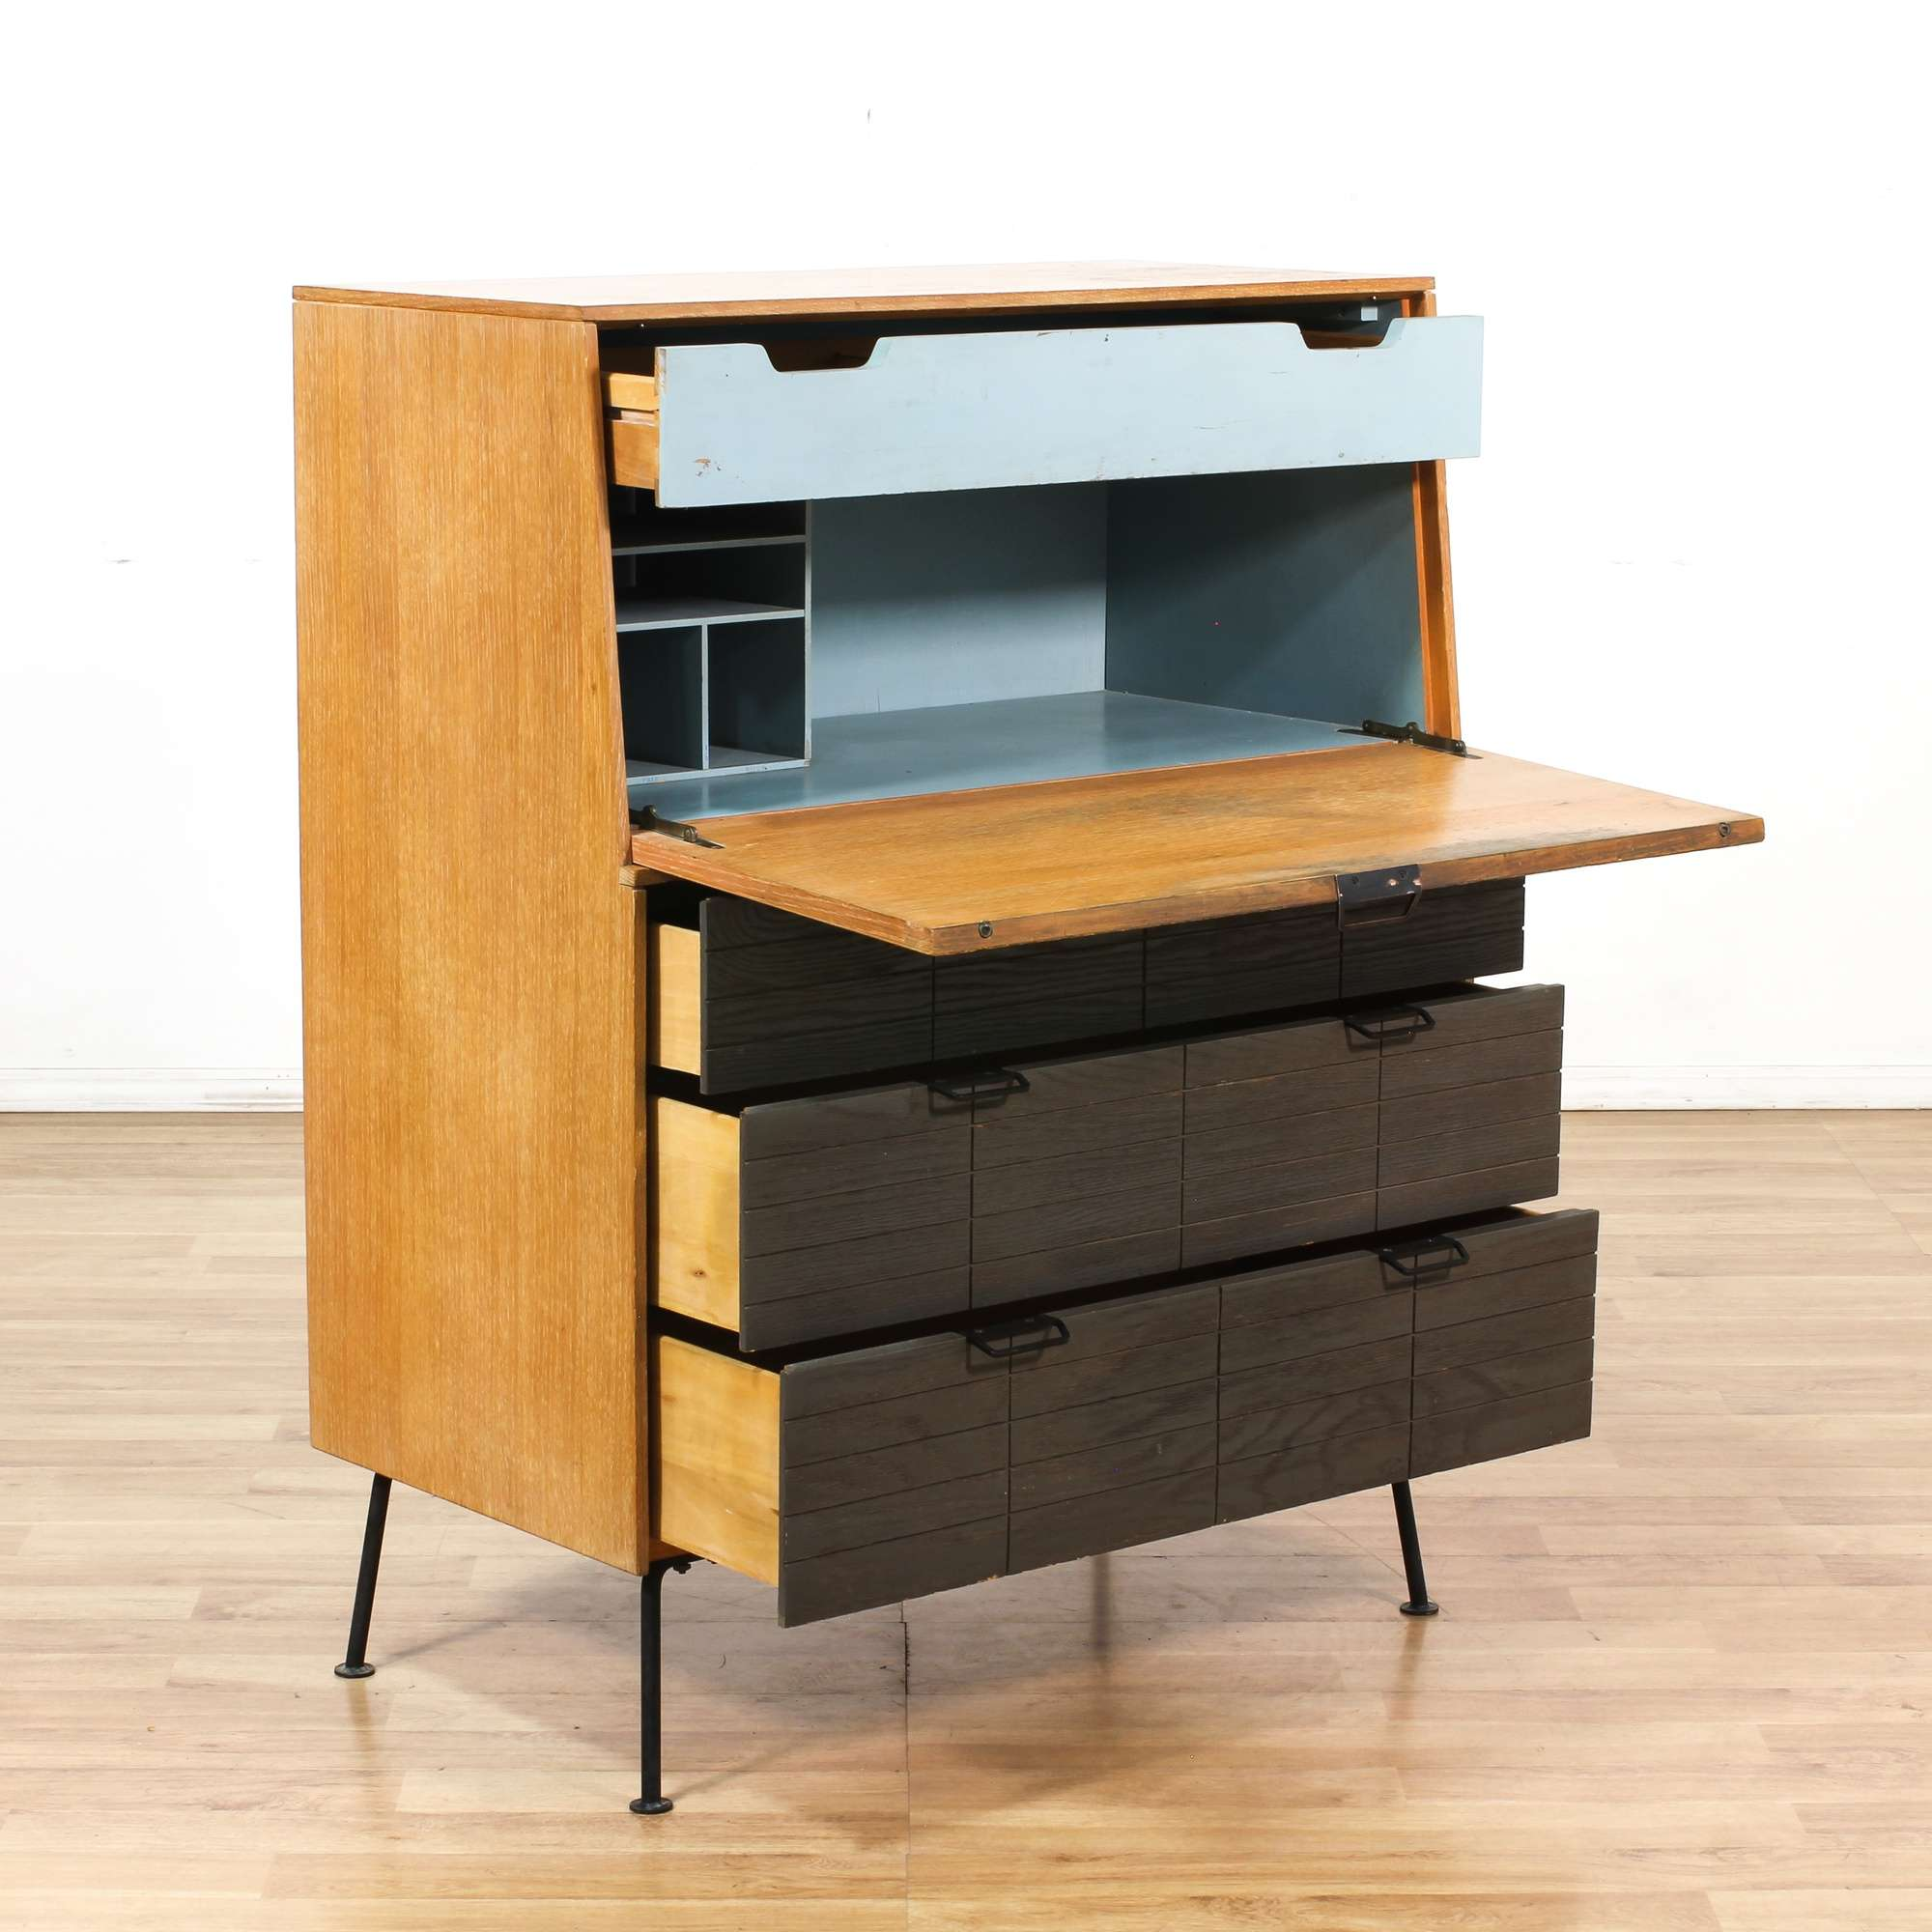 down flip top furniture surface wood secretary desk small classic slant with stained